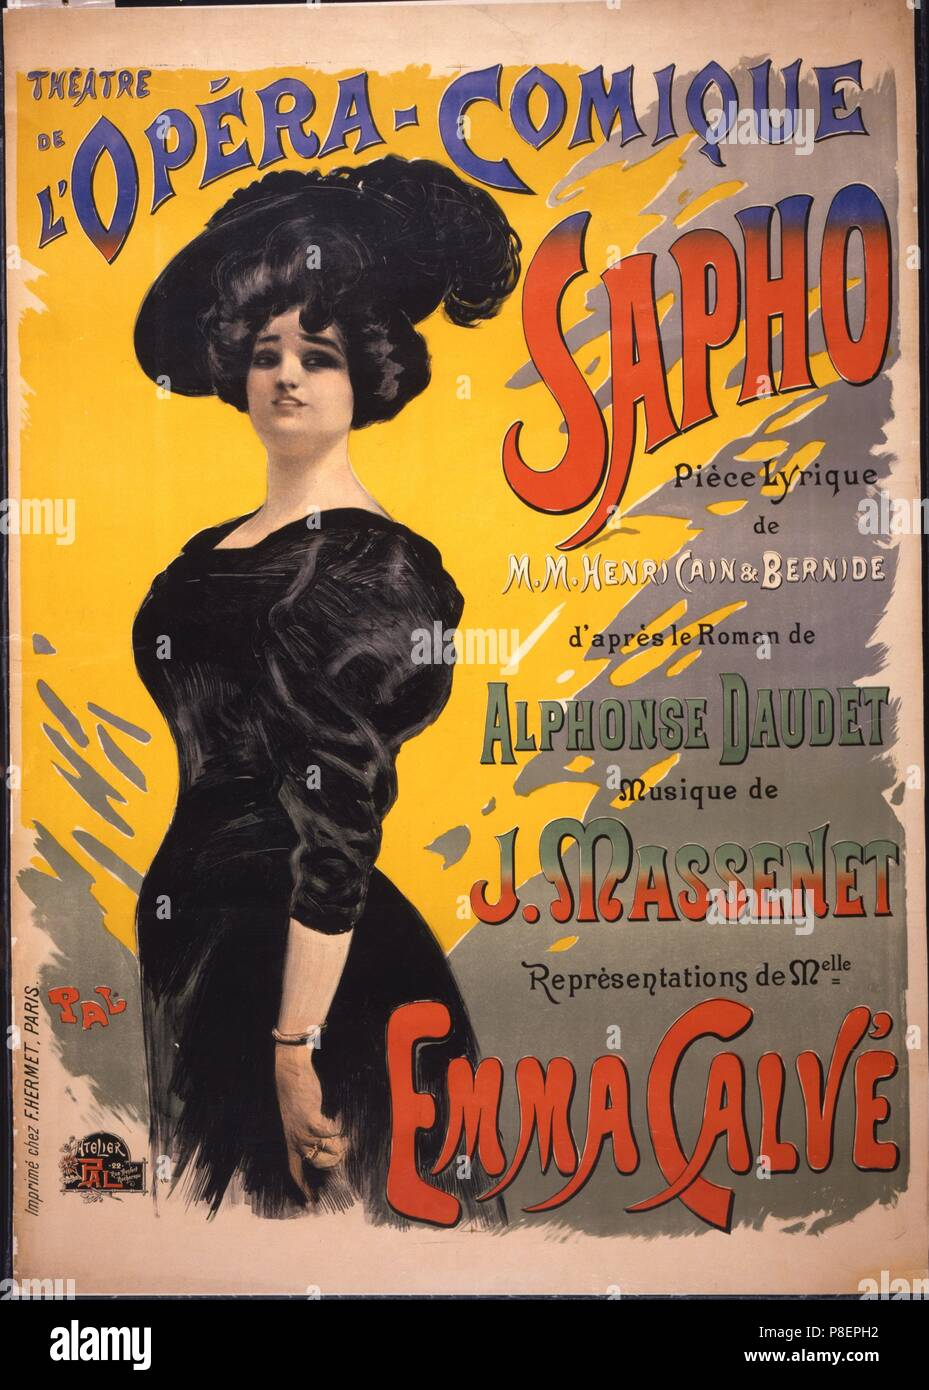 Emma Calvé as Fanny Legrand. Poster for the premiere of opéra-comique Sapho by Massenet performed on 27 November 1897 by the Opé. Museum: PRIVATE COLLECTION. - Stock Image